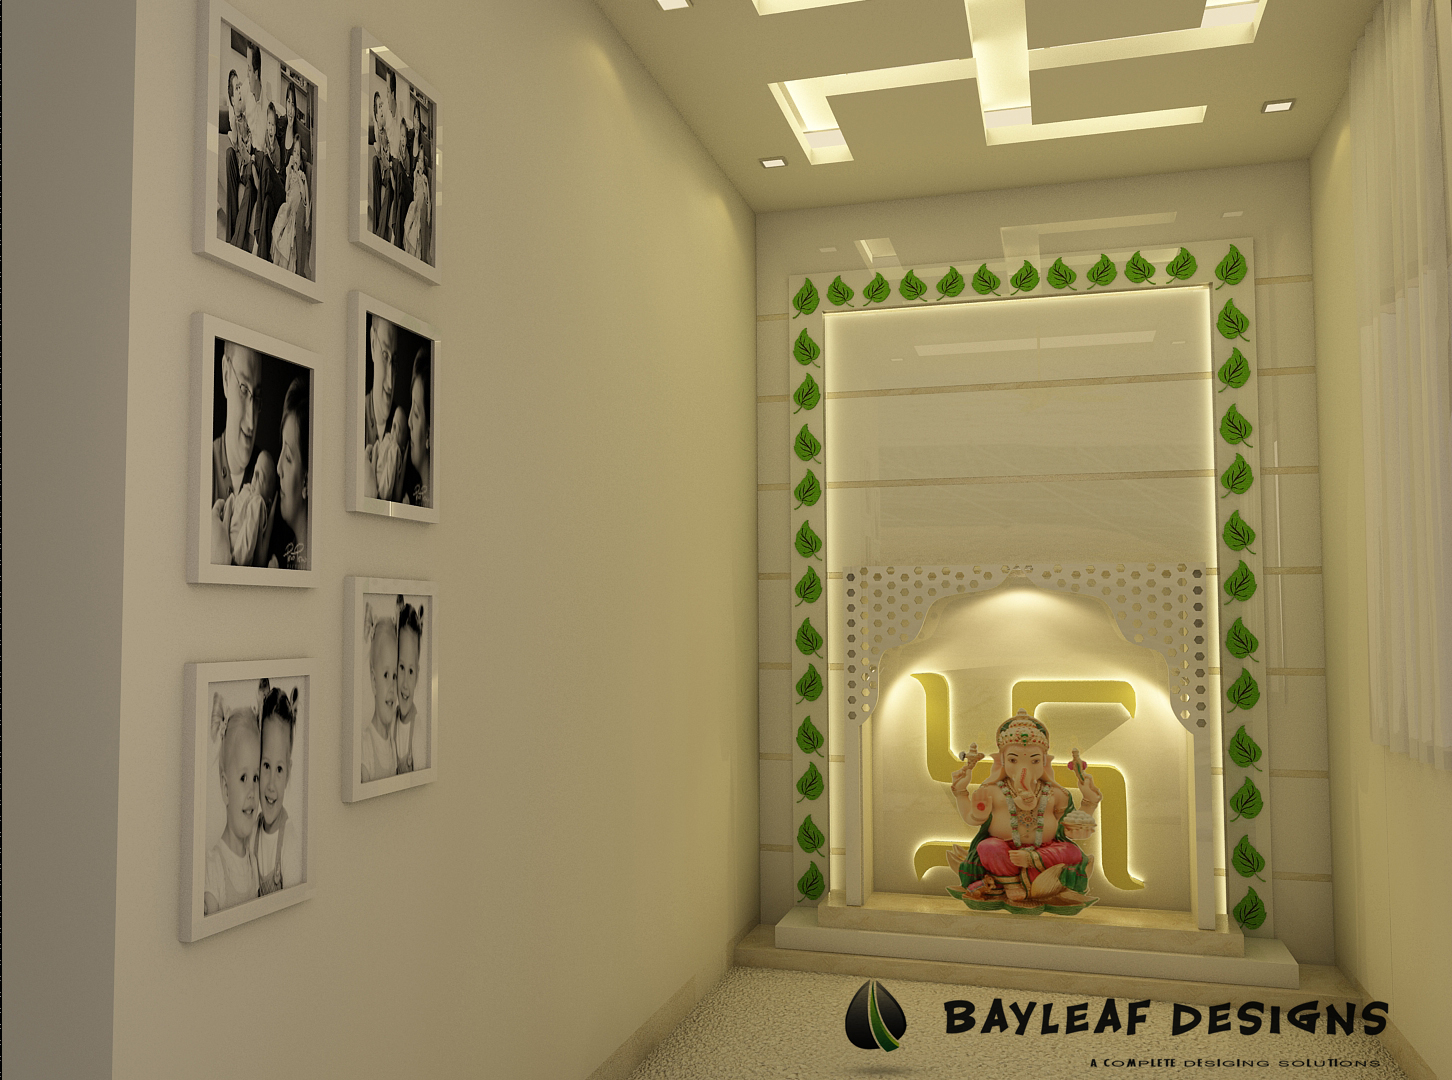 Mandir ashok vihar bayleaf designs for Room design images